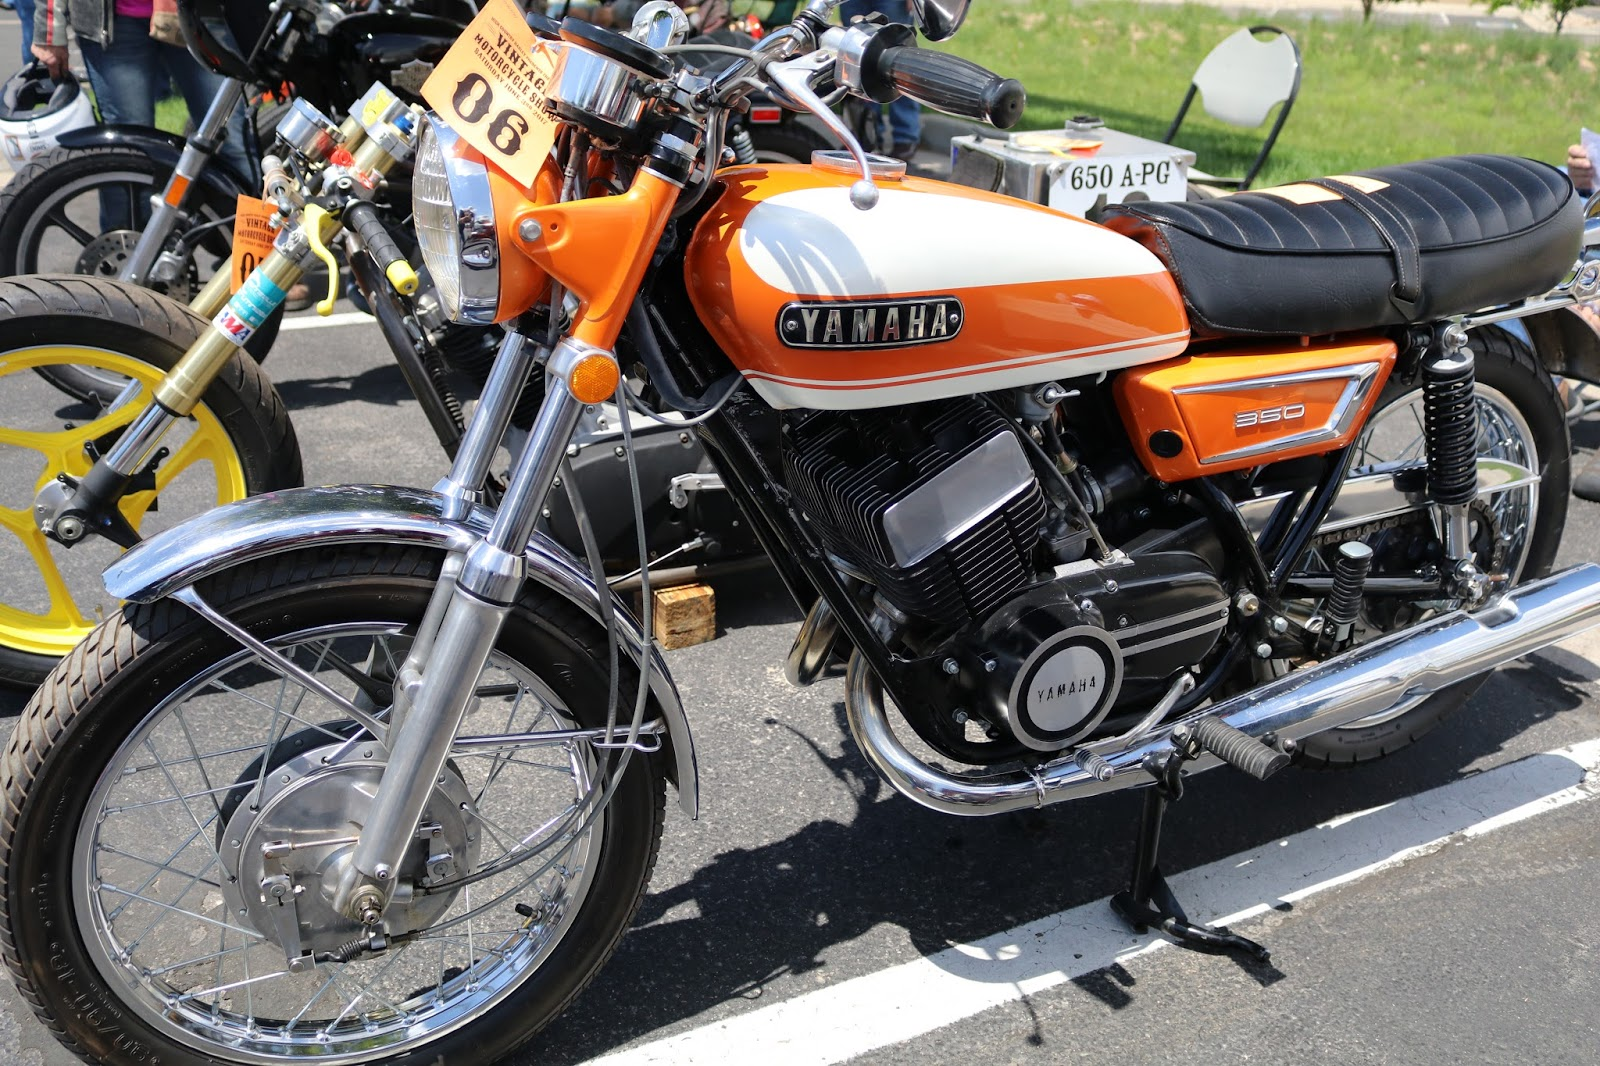 small resolution of 1972 yamaha r5 on display at the 2017 vintage motorcycle show frederick co